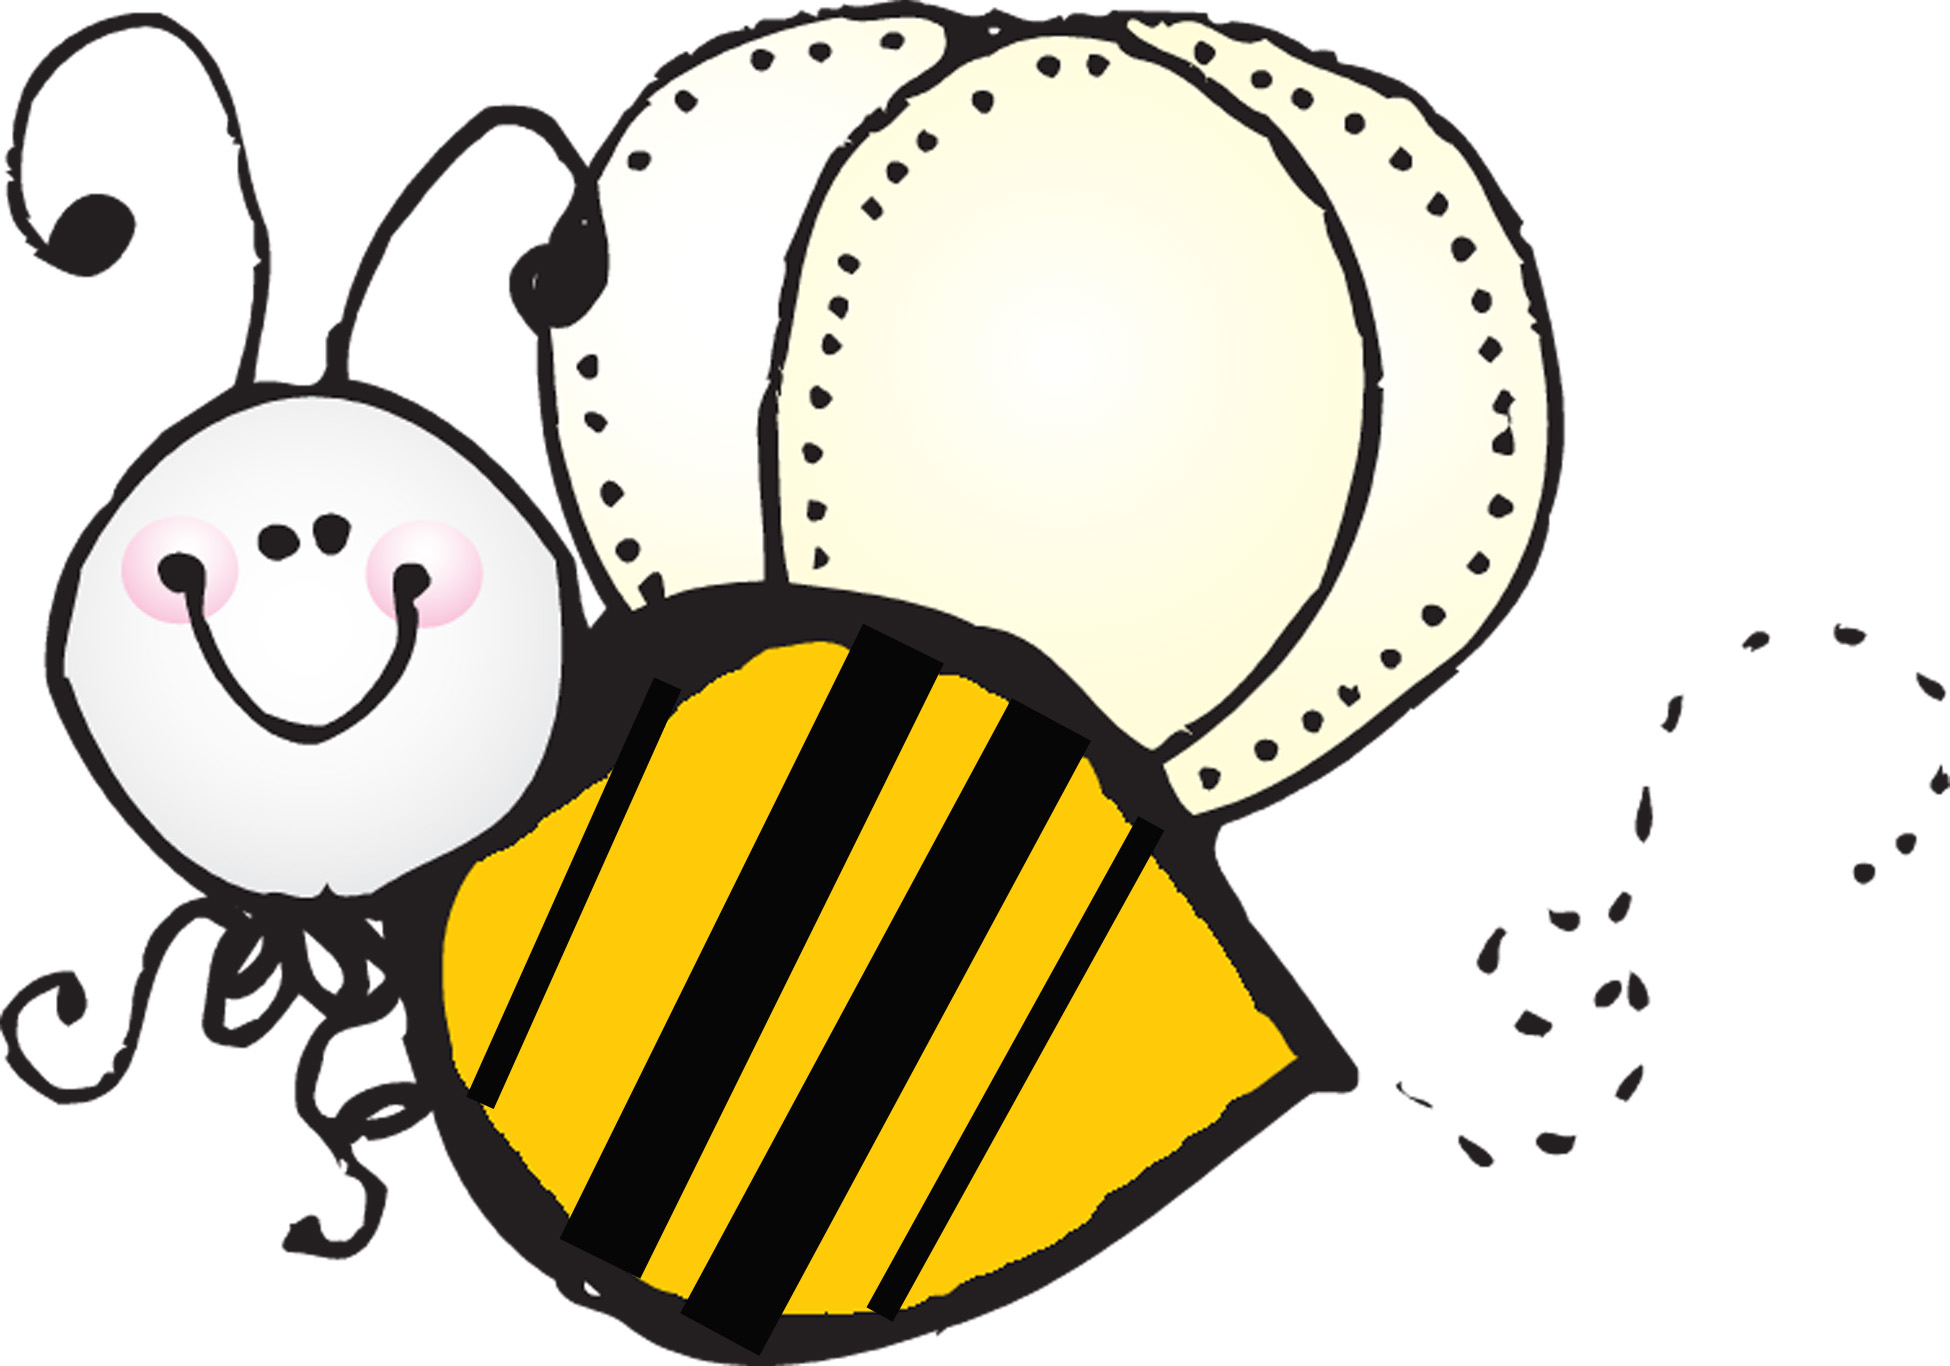 1950x1366 Bee clipart 2 bumble bee clip art free 5 all rights